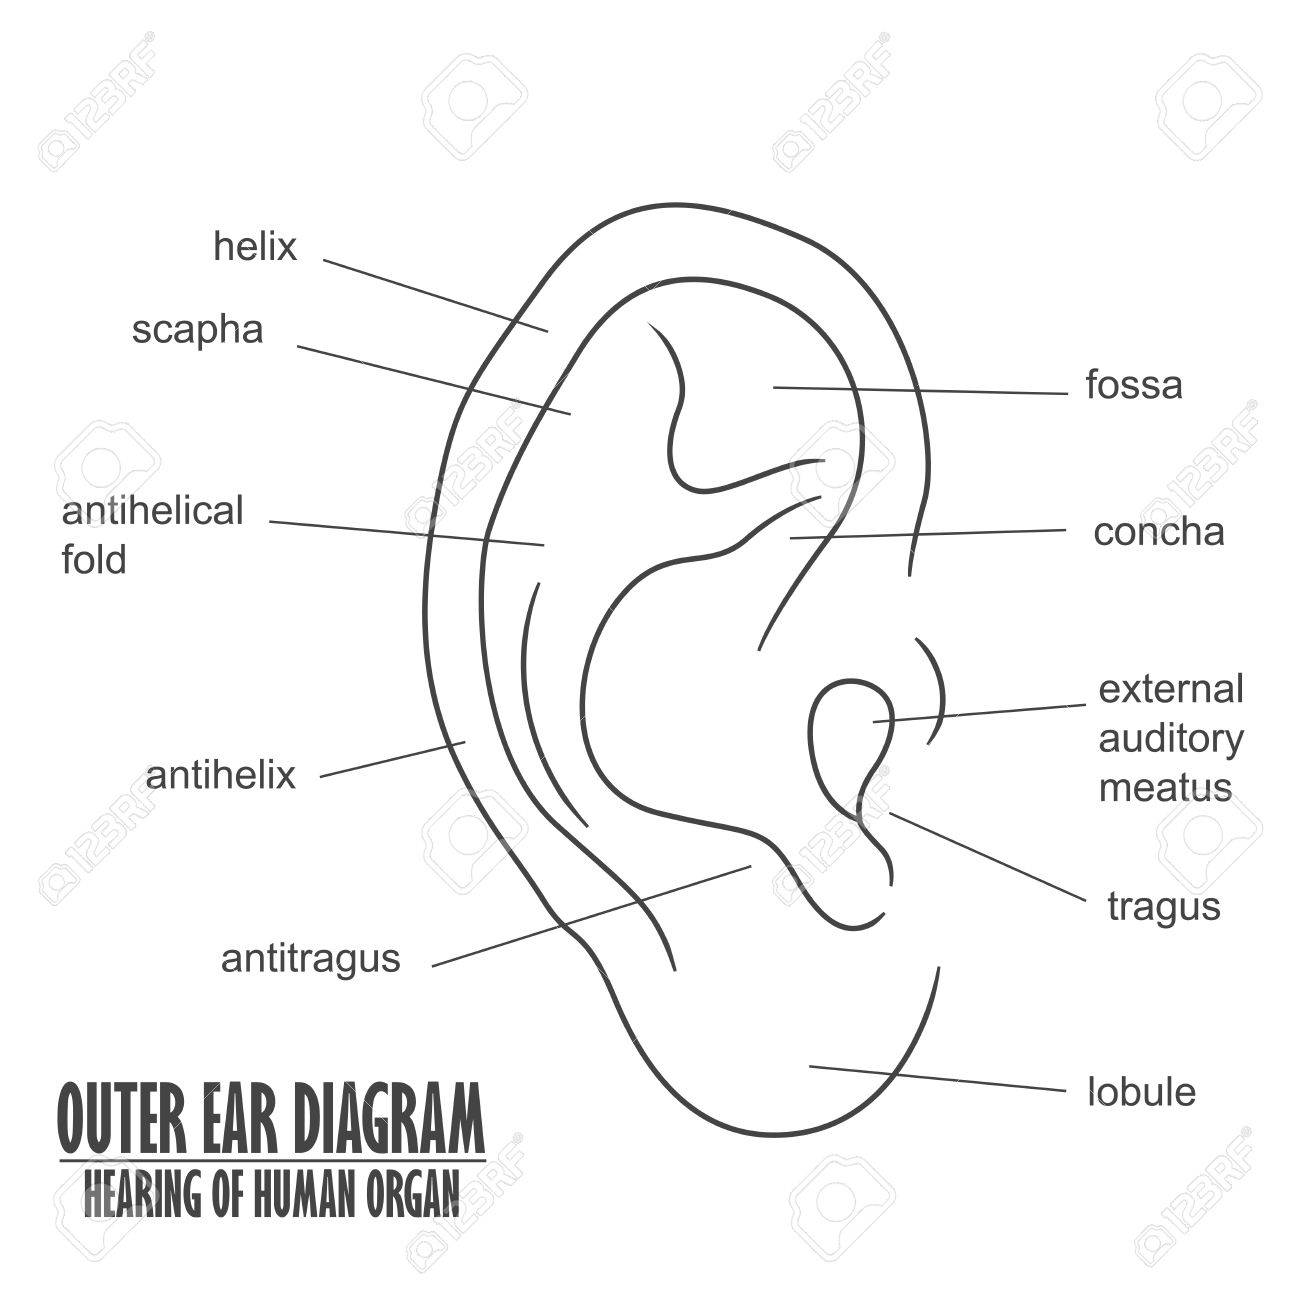 hight resolution of outer ear diagram hearing of human organ royalty free cliparts outer ear diagram hearing of human